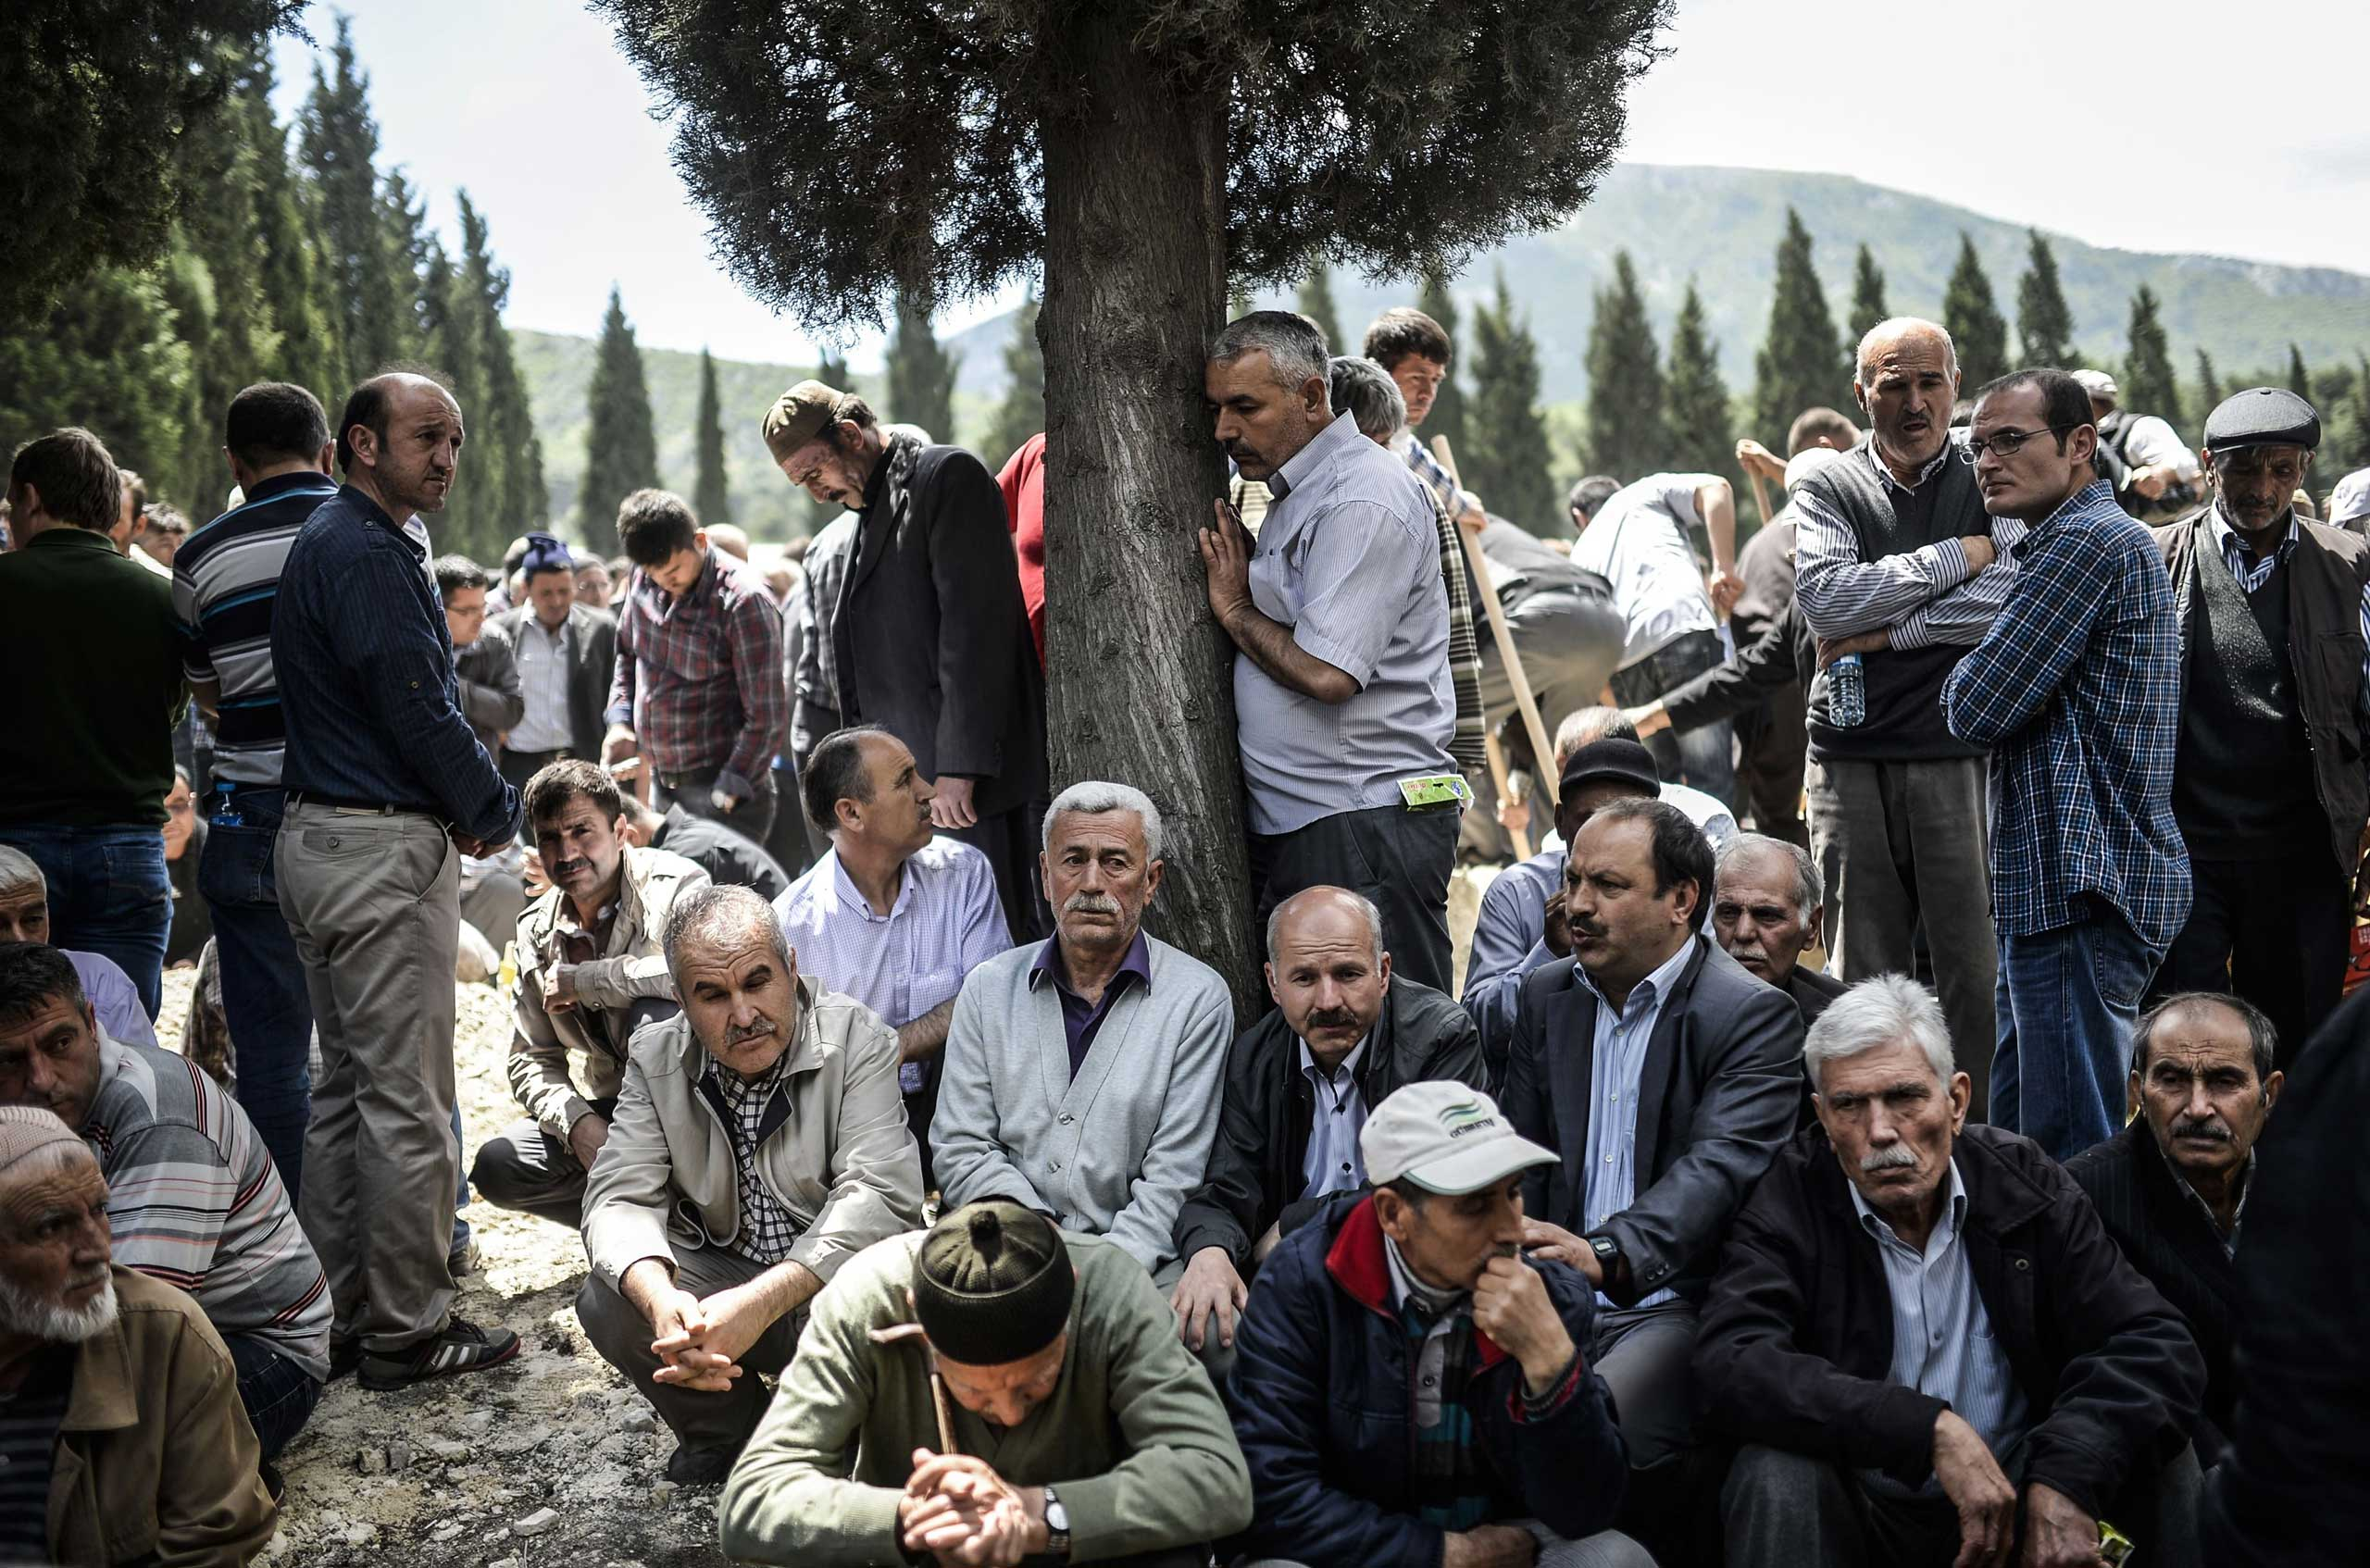 People mourn in a cemetery during the funeral ceremony of miners who died in an explosion on May 15, 2014, in the western town of Soma in the Manisa province, Turkey.